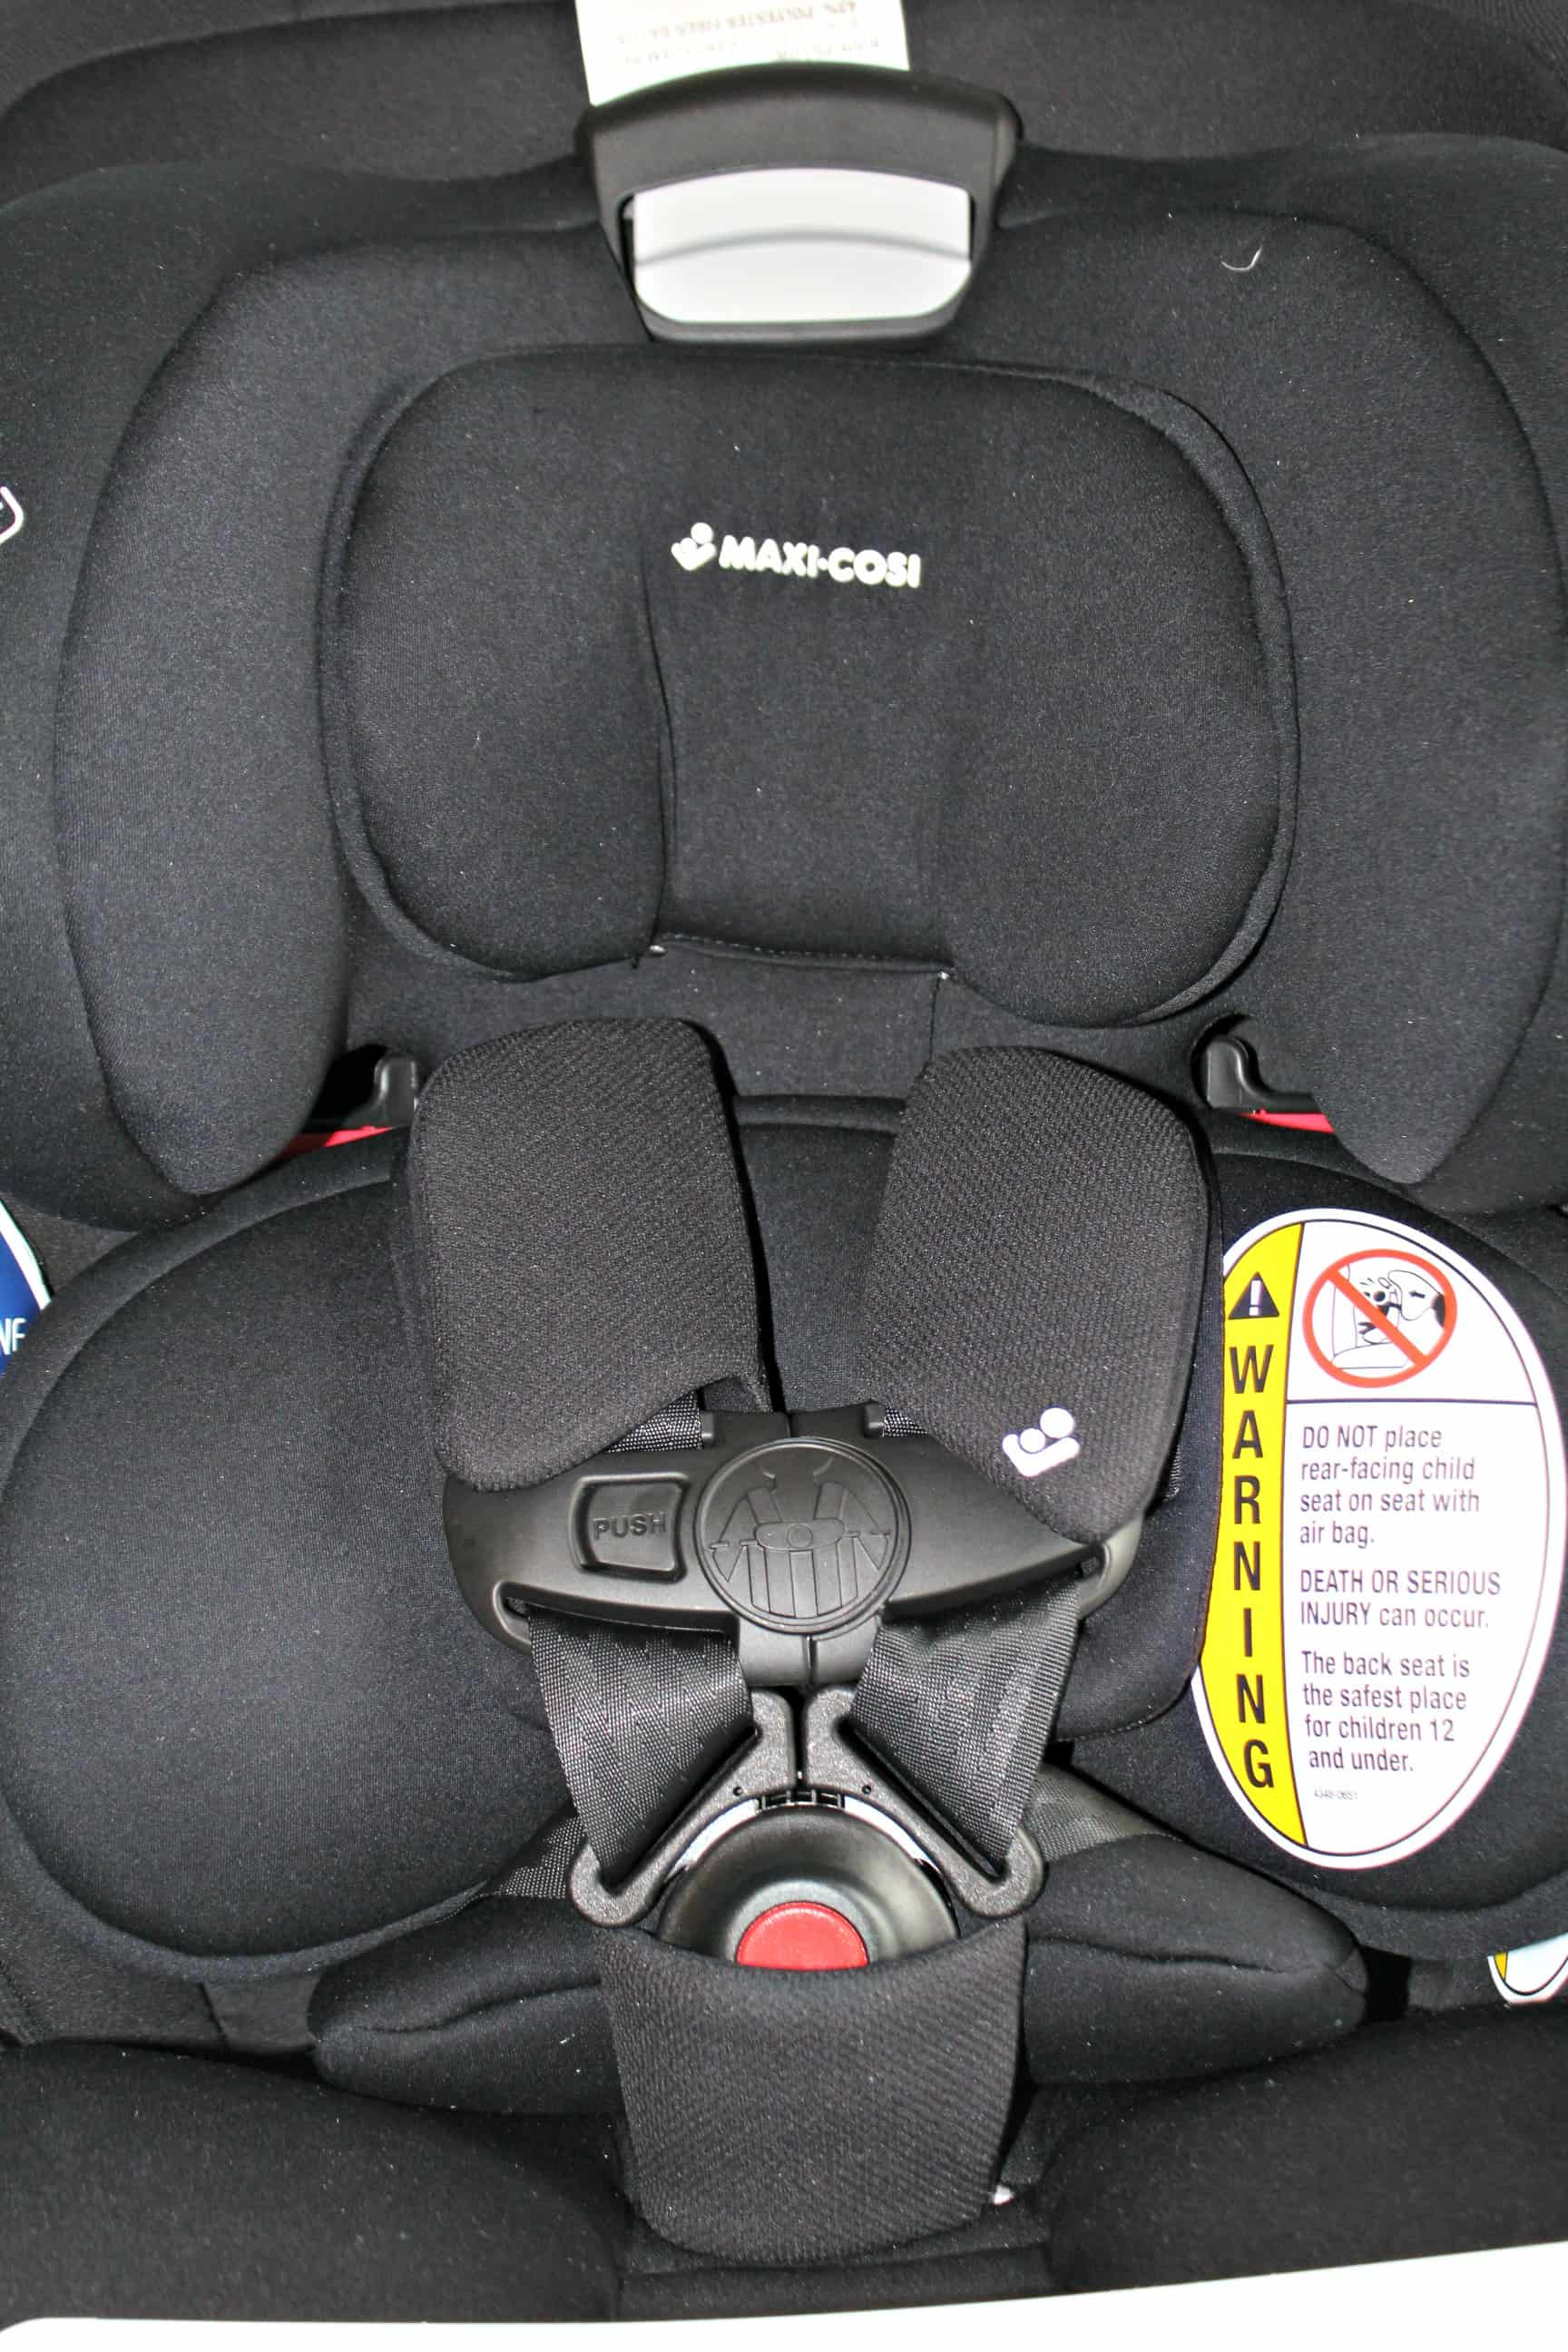 The perfect safety car seat for infants